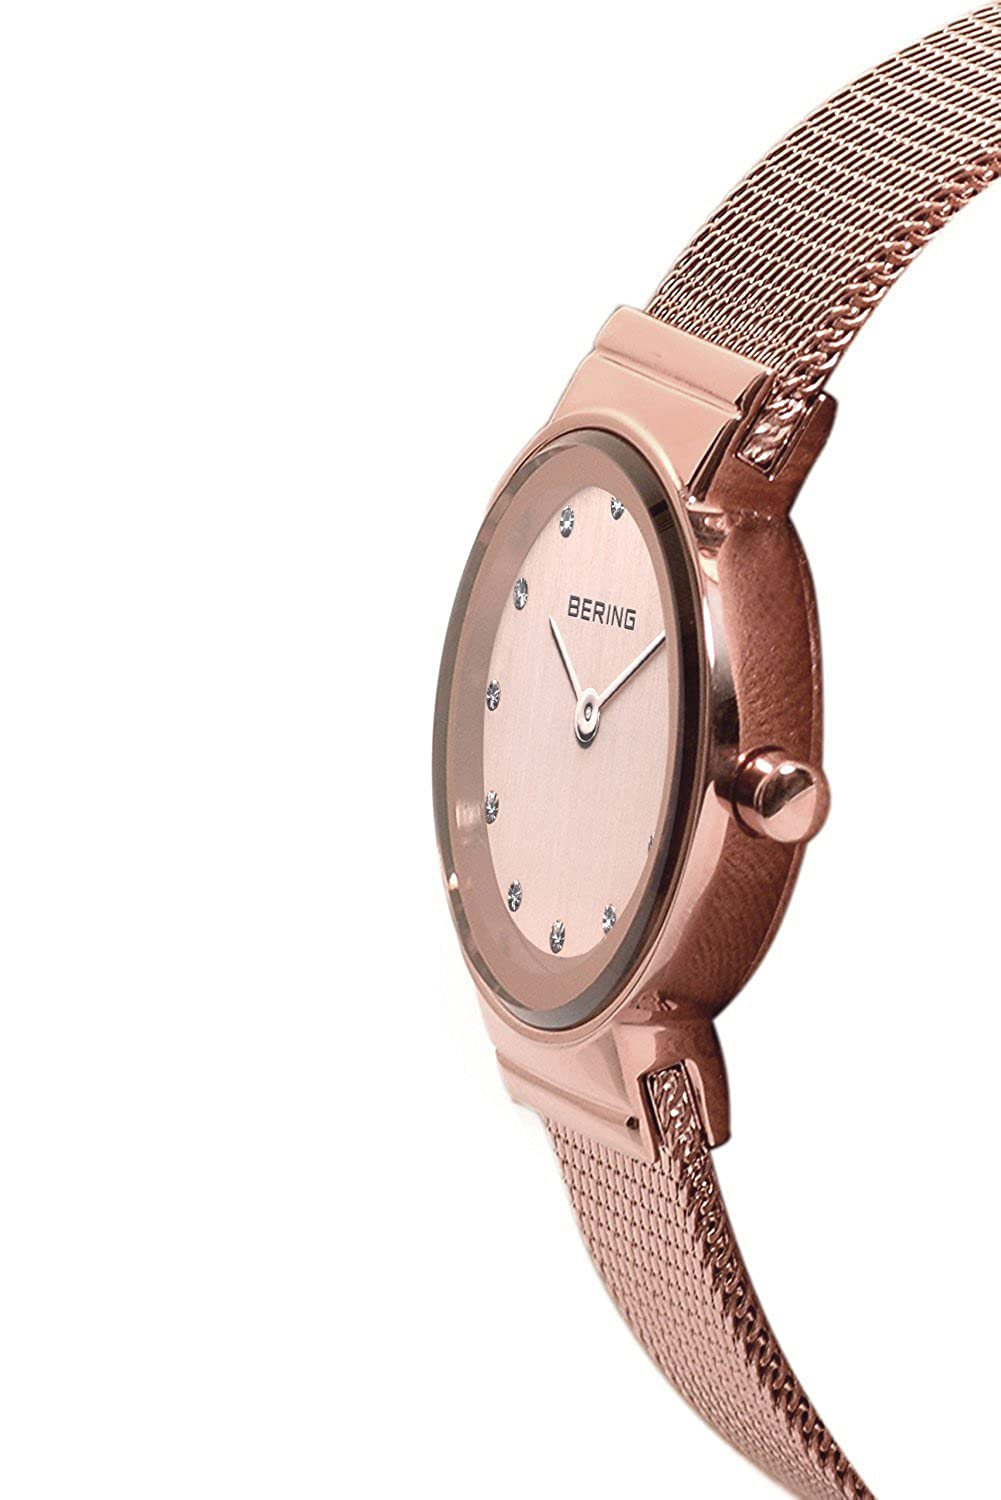 c02bdc7364c Buy BERING Classic Analog Rose Gold Dial Women s Watch-10122-366 Online at  Low Prices in India - Amazon.in